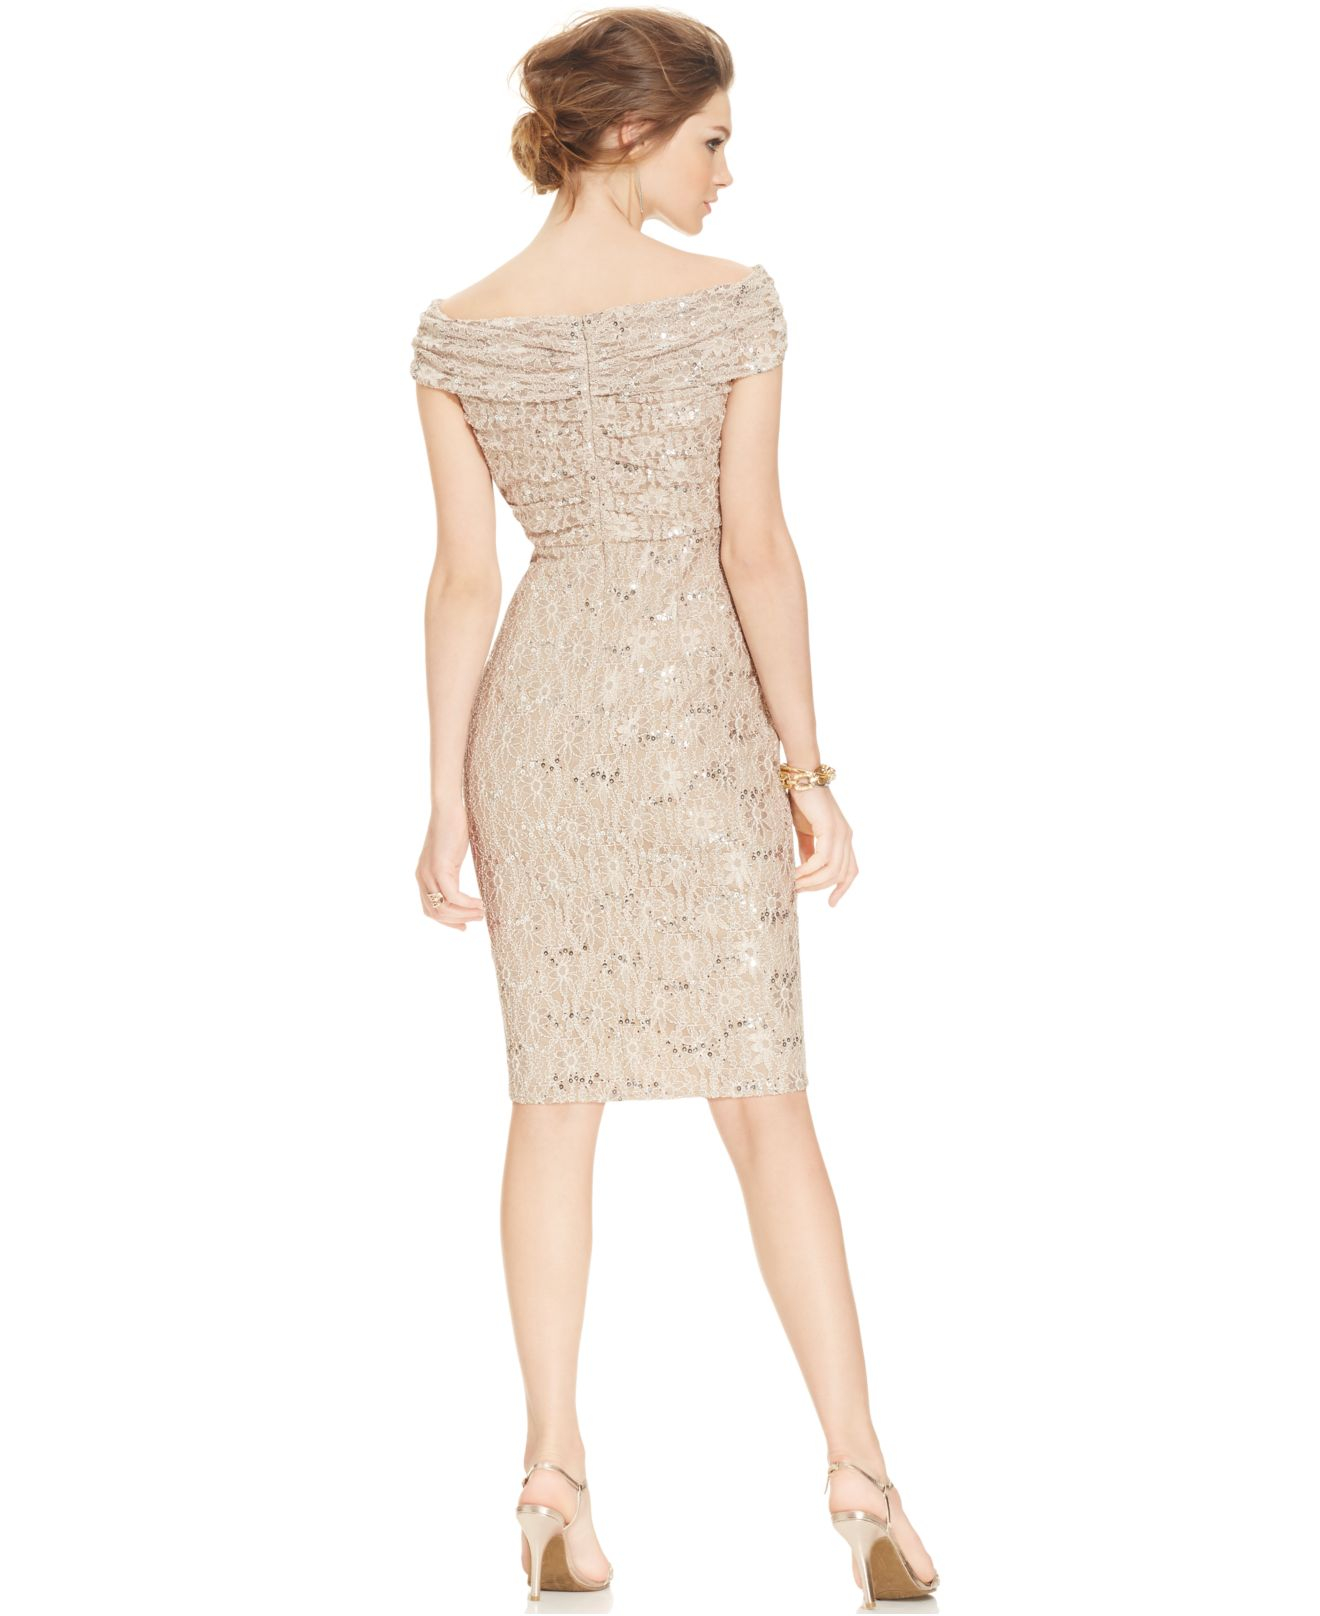 Taupe and Gold Cocktail Dresses